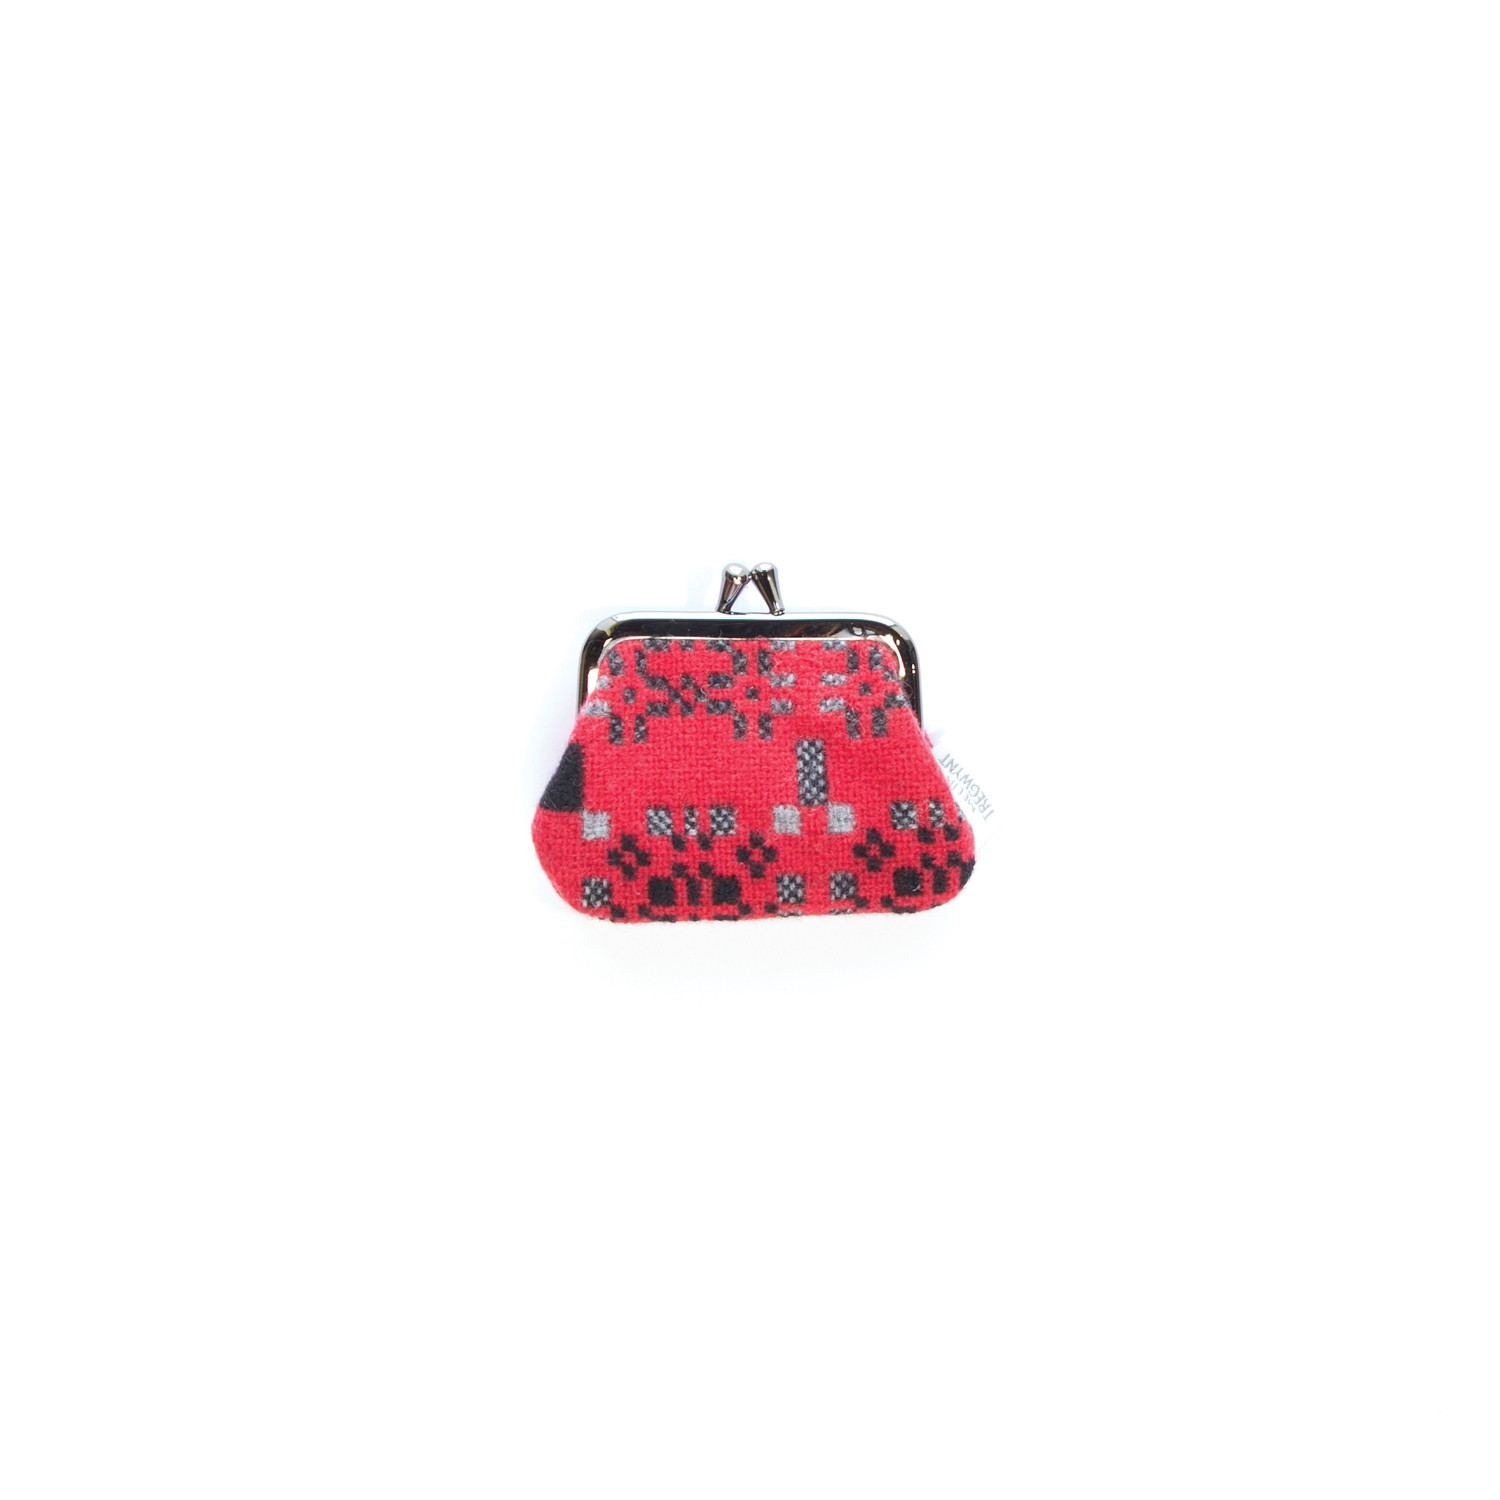 Knot Garden Jemima Single Purse